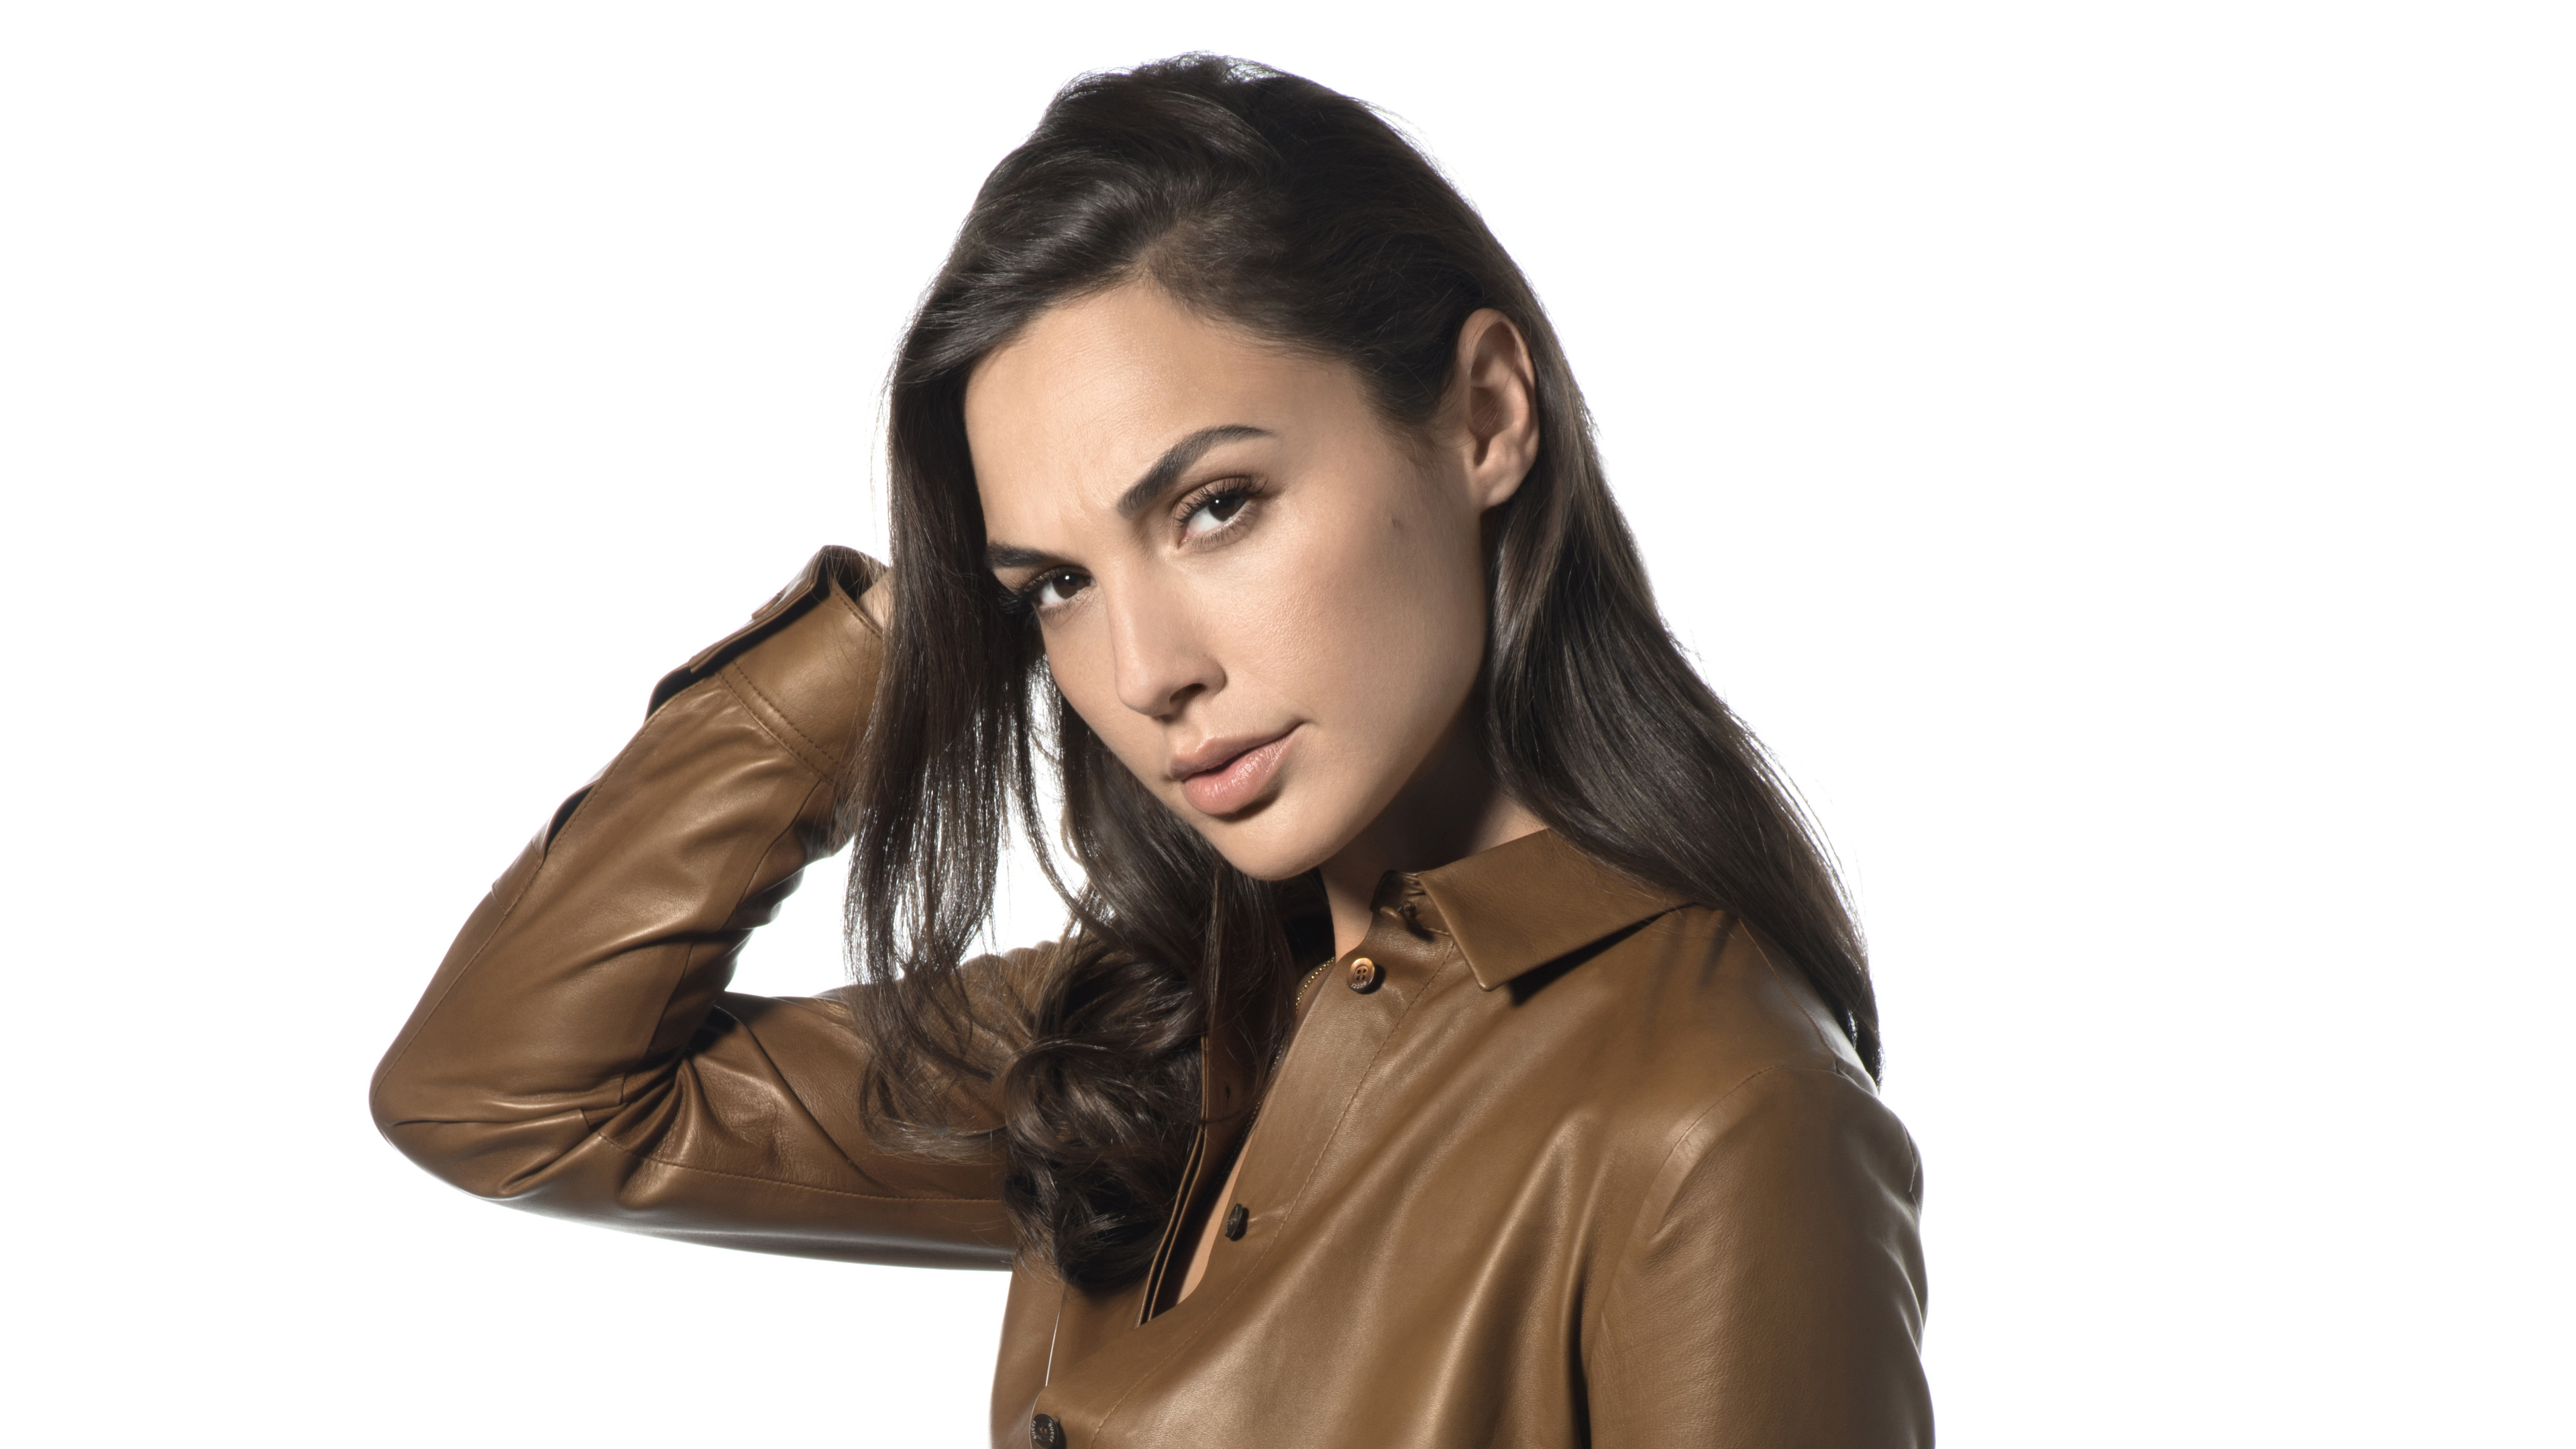 gal gadot 4k 5k 1536946323 - Gal Gadot 4k 5k - hd-wallpapers, girls wallpapers, gal gadot wallpapers, celebrities wallpapers, 5k wallpapers, 4k-wallpapers